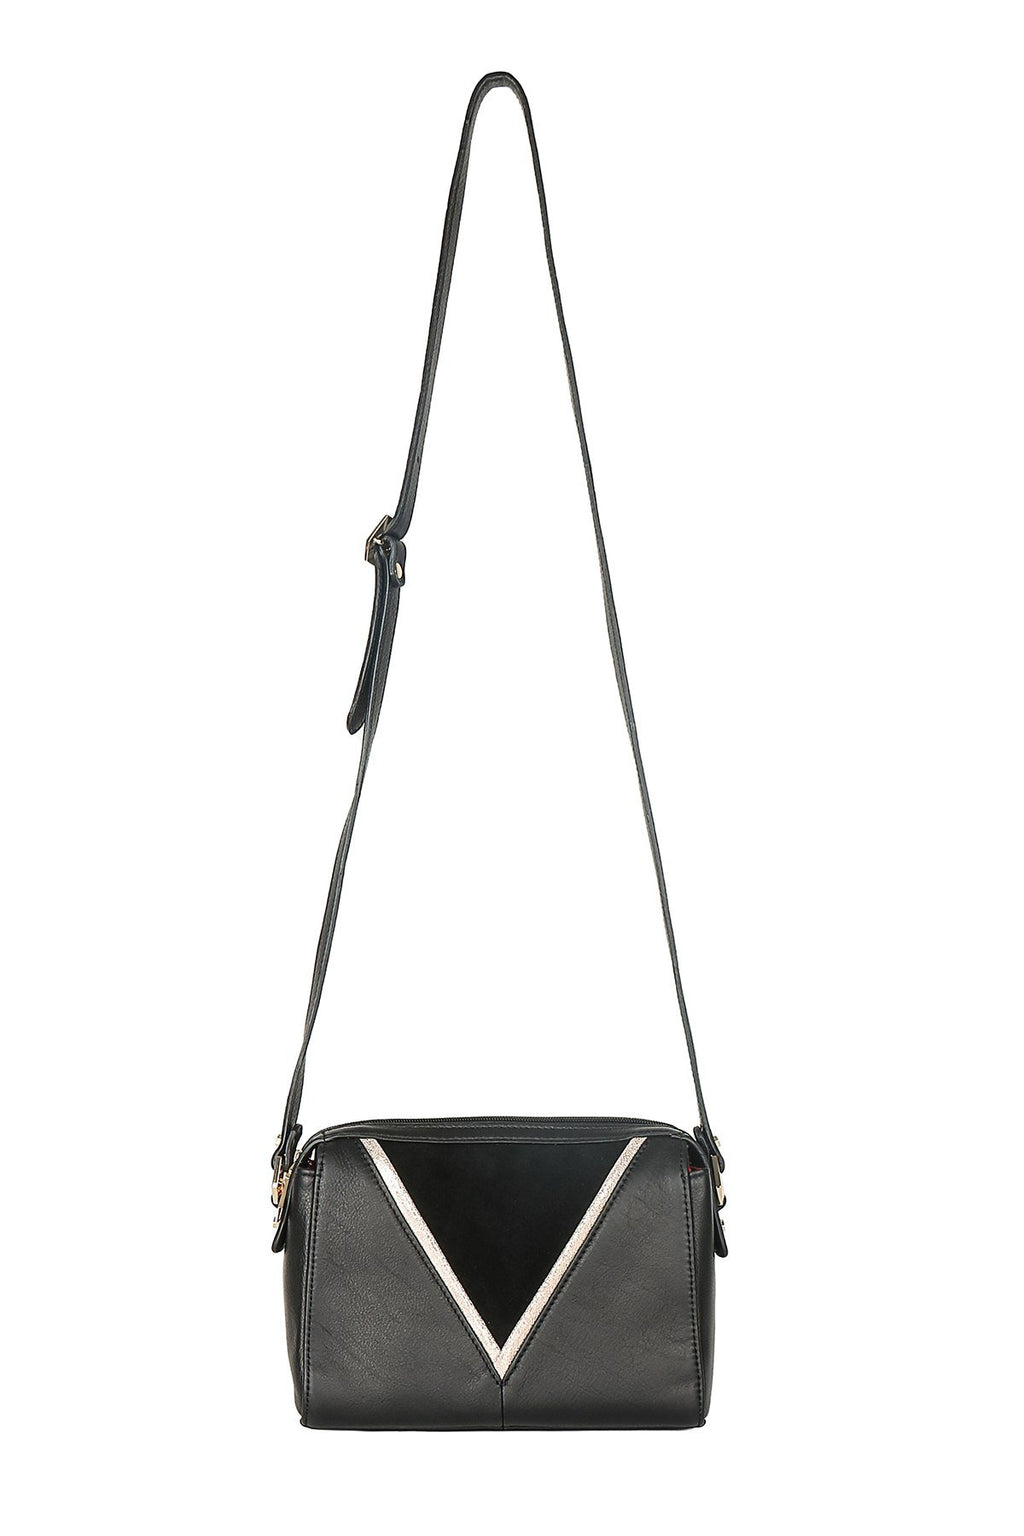 Cherry Paris - Elisabeth crossbody bag black